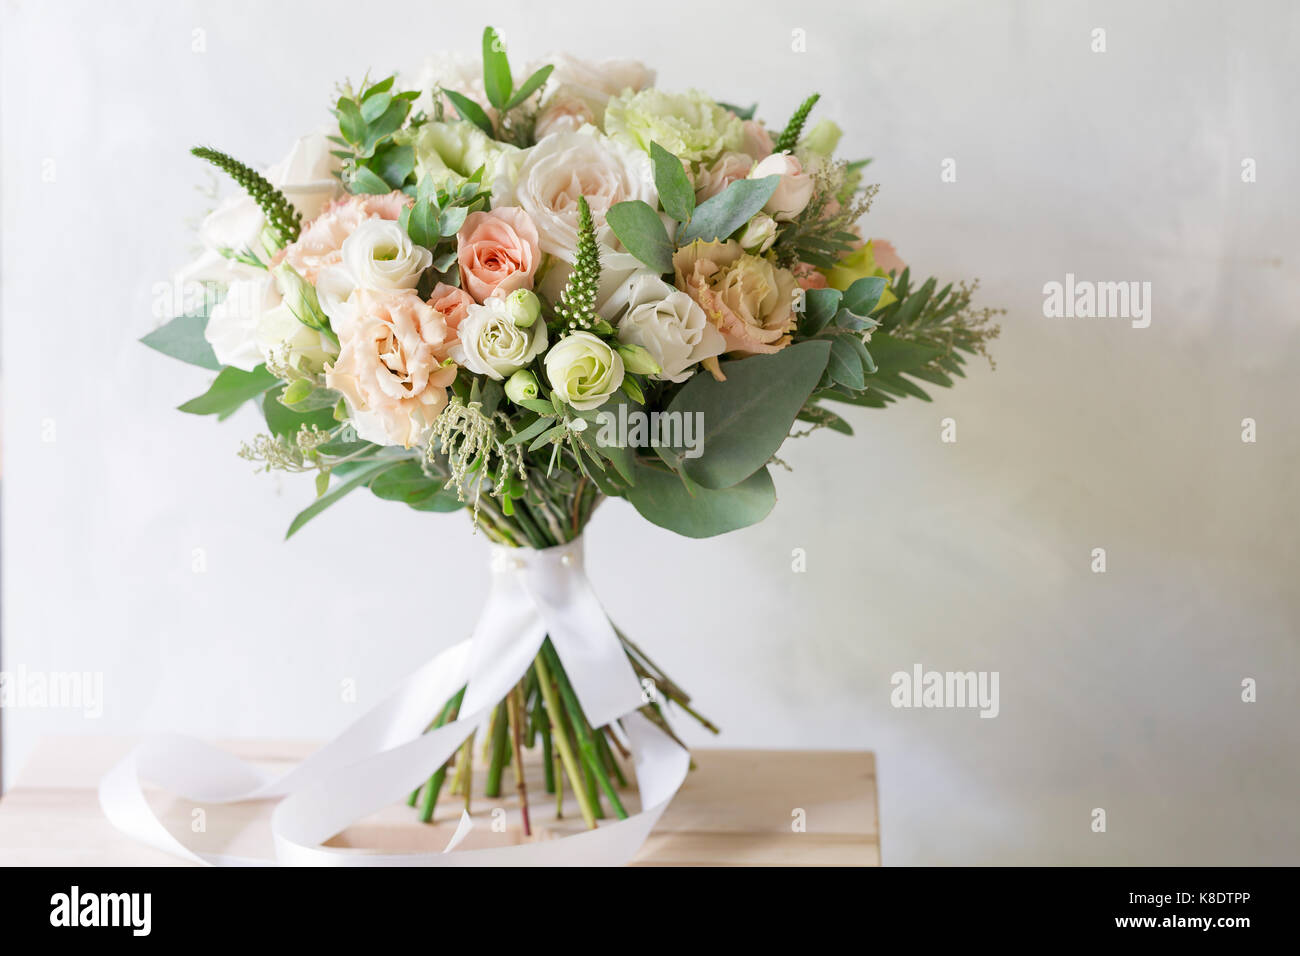 Bridal Bouquet A Simple Bouquet Of Flowers And Greens Stock Photo Alamy